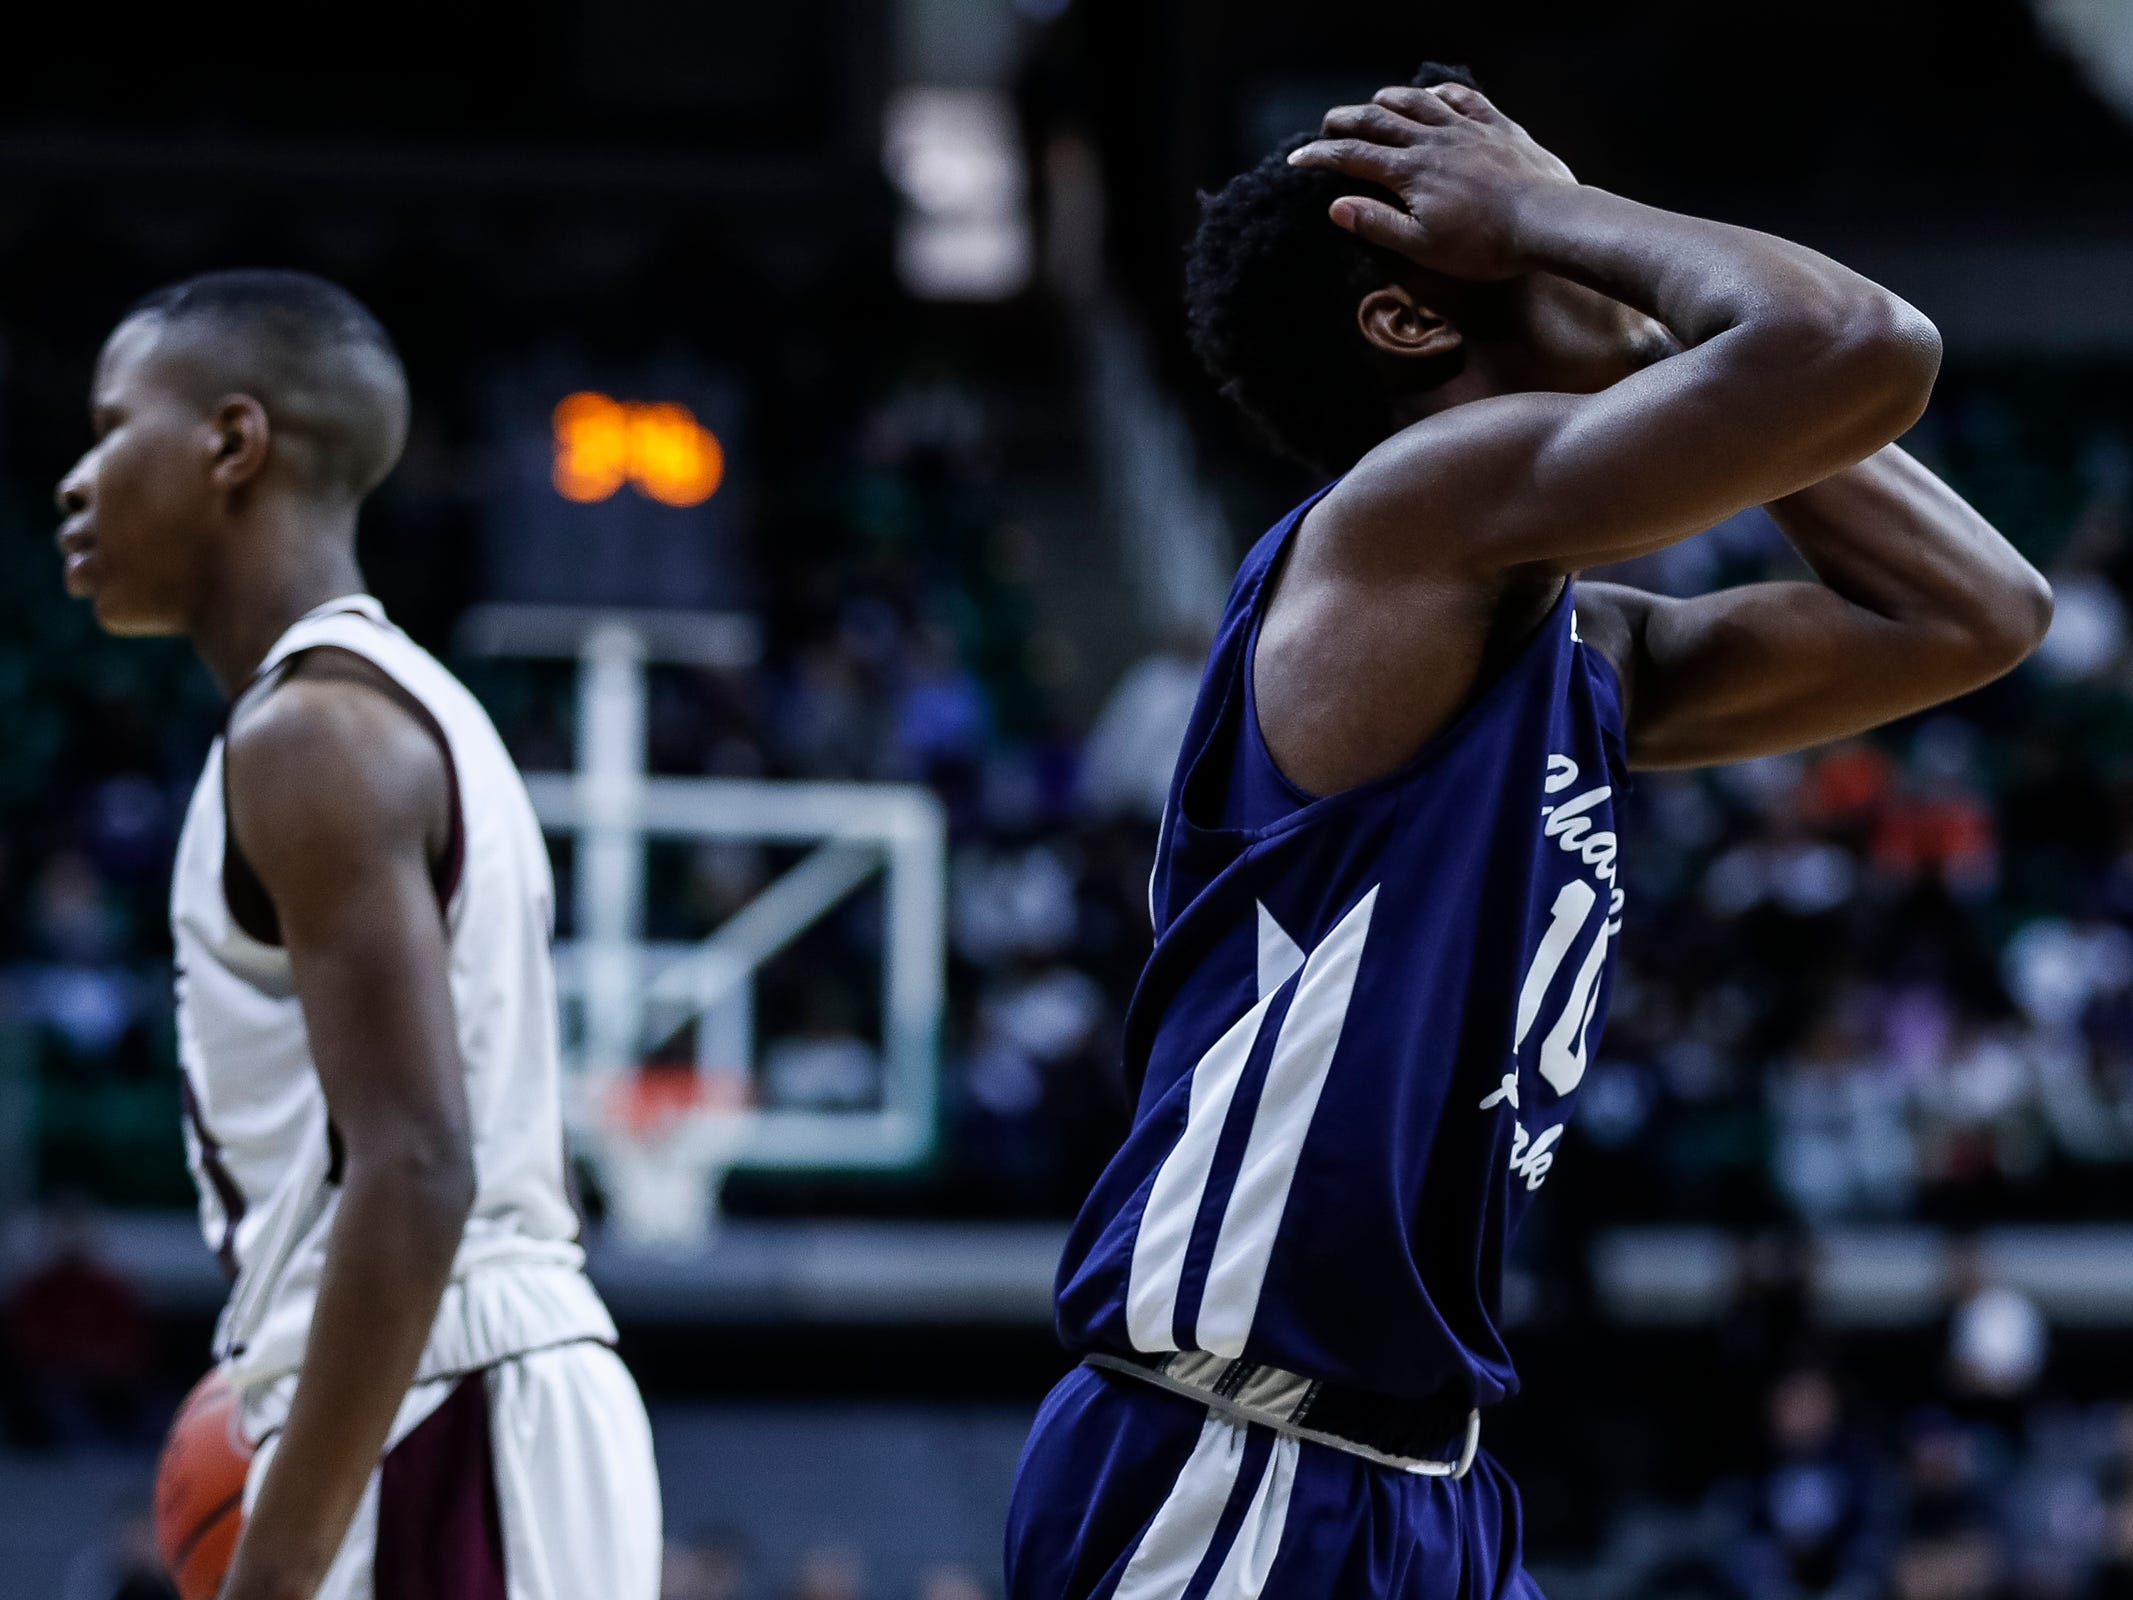 Harper Woods Chandler Park's Josh Diggs (10) reacts to a personal foul during the second half of MHSAA Division 2 semifinal against River Rouge at the Breslin Center in East Lansing, Friday, March 15, 2019.